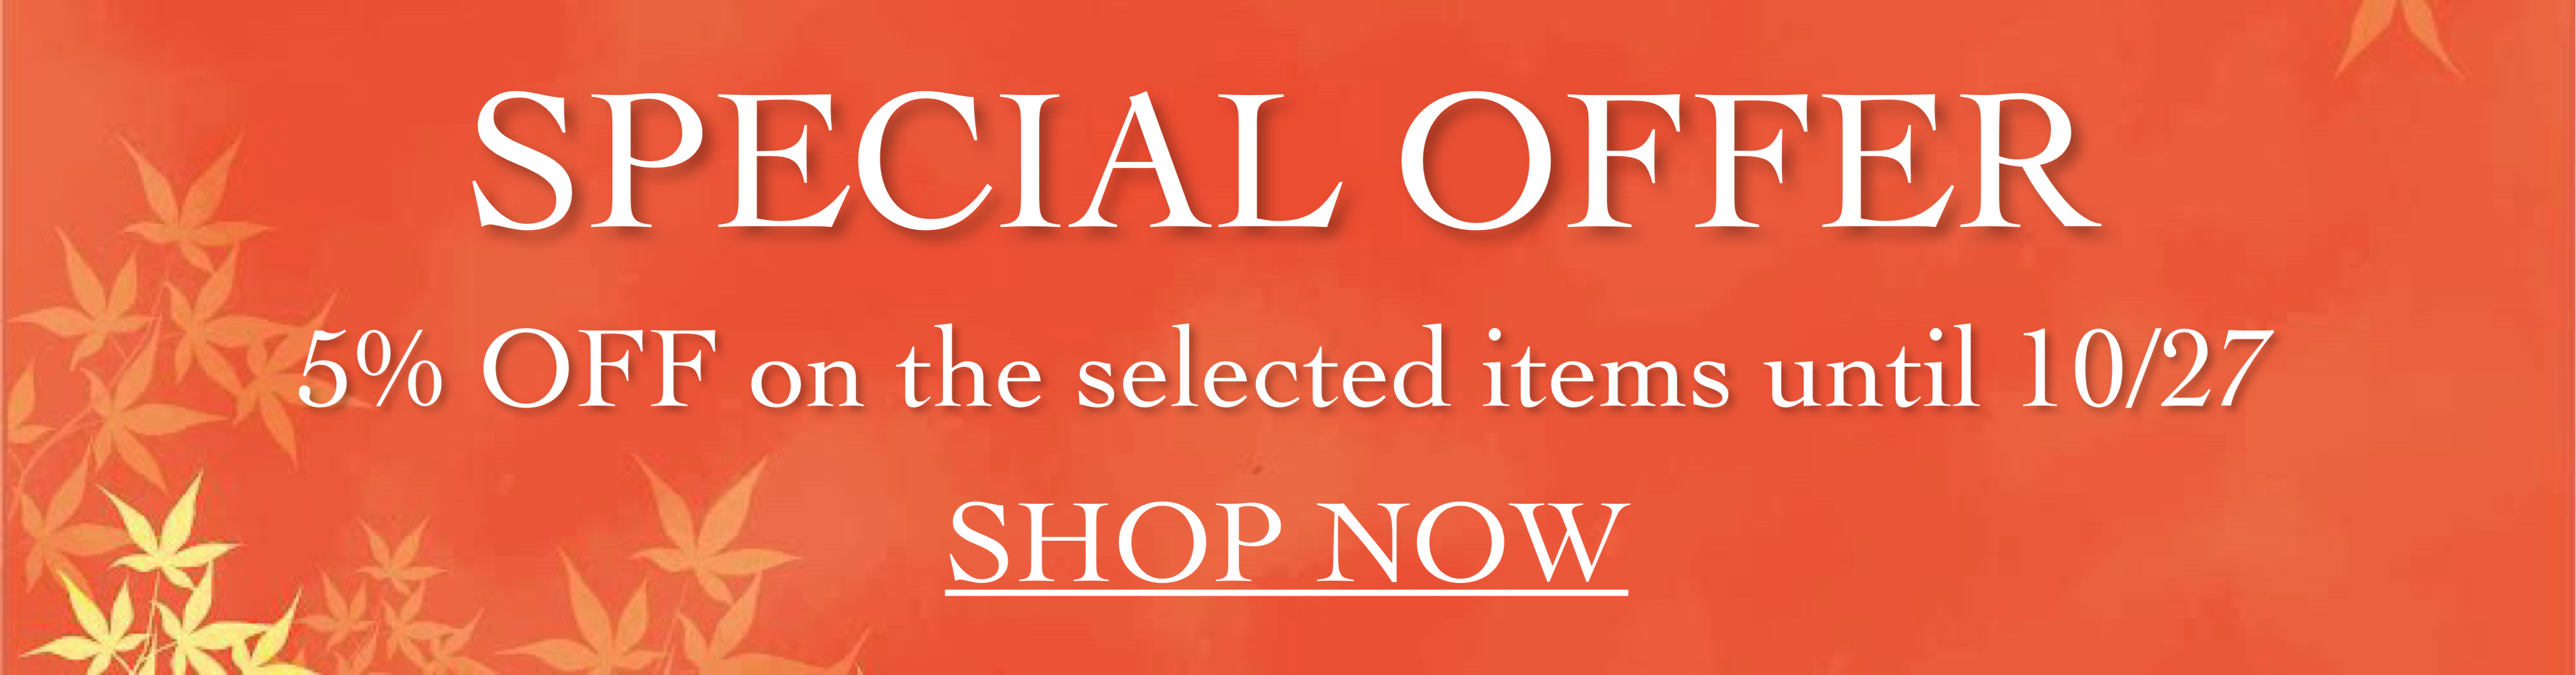 5% off on the selected items